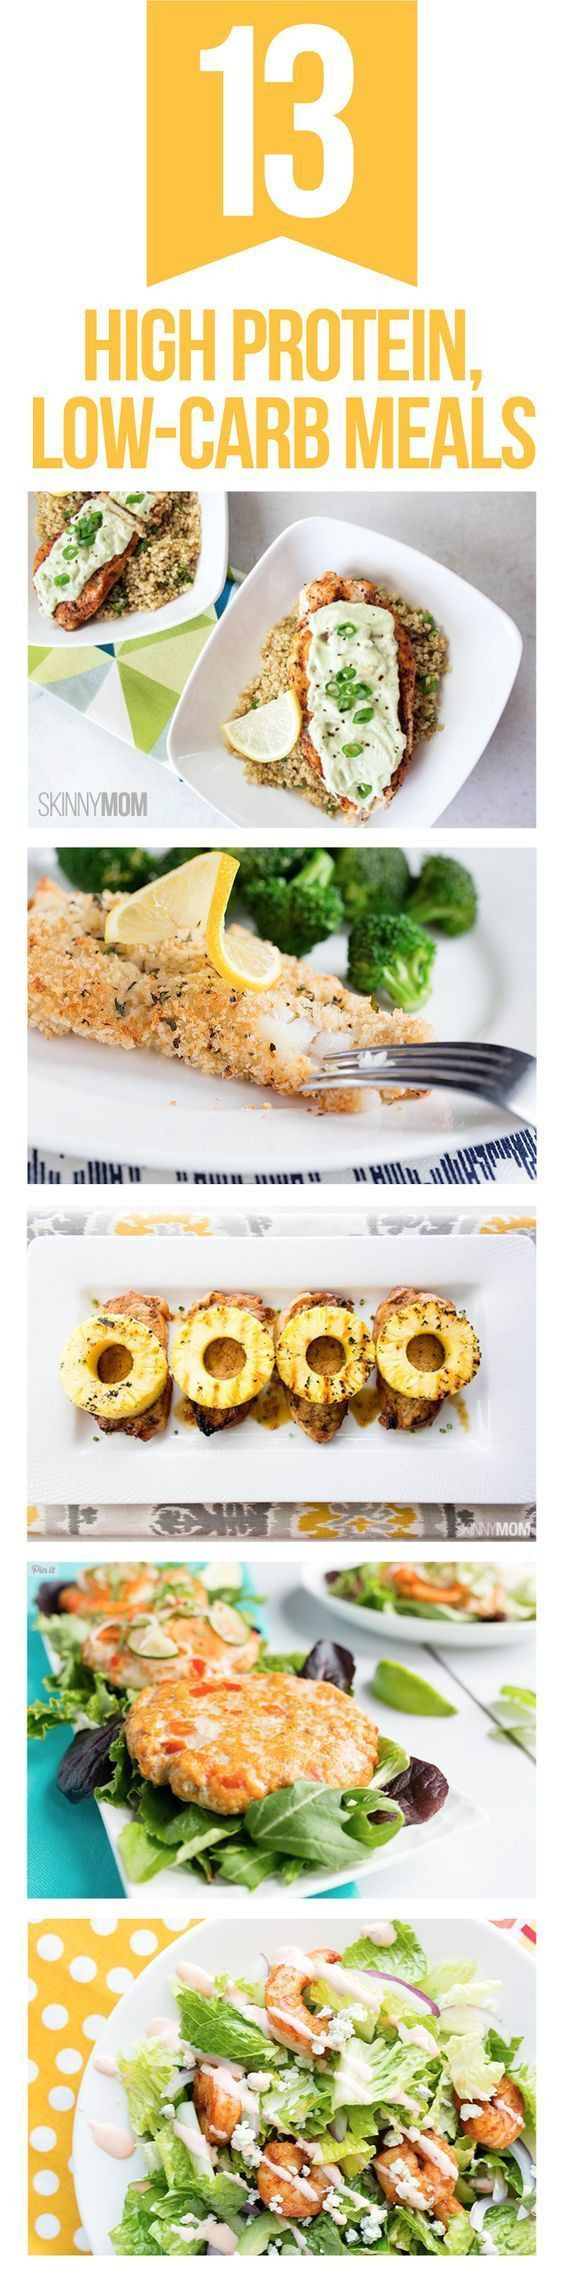 Healthy Low Carb High Protein Recipes  13 Low Carb High Protein Recipes